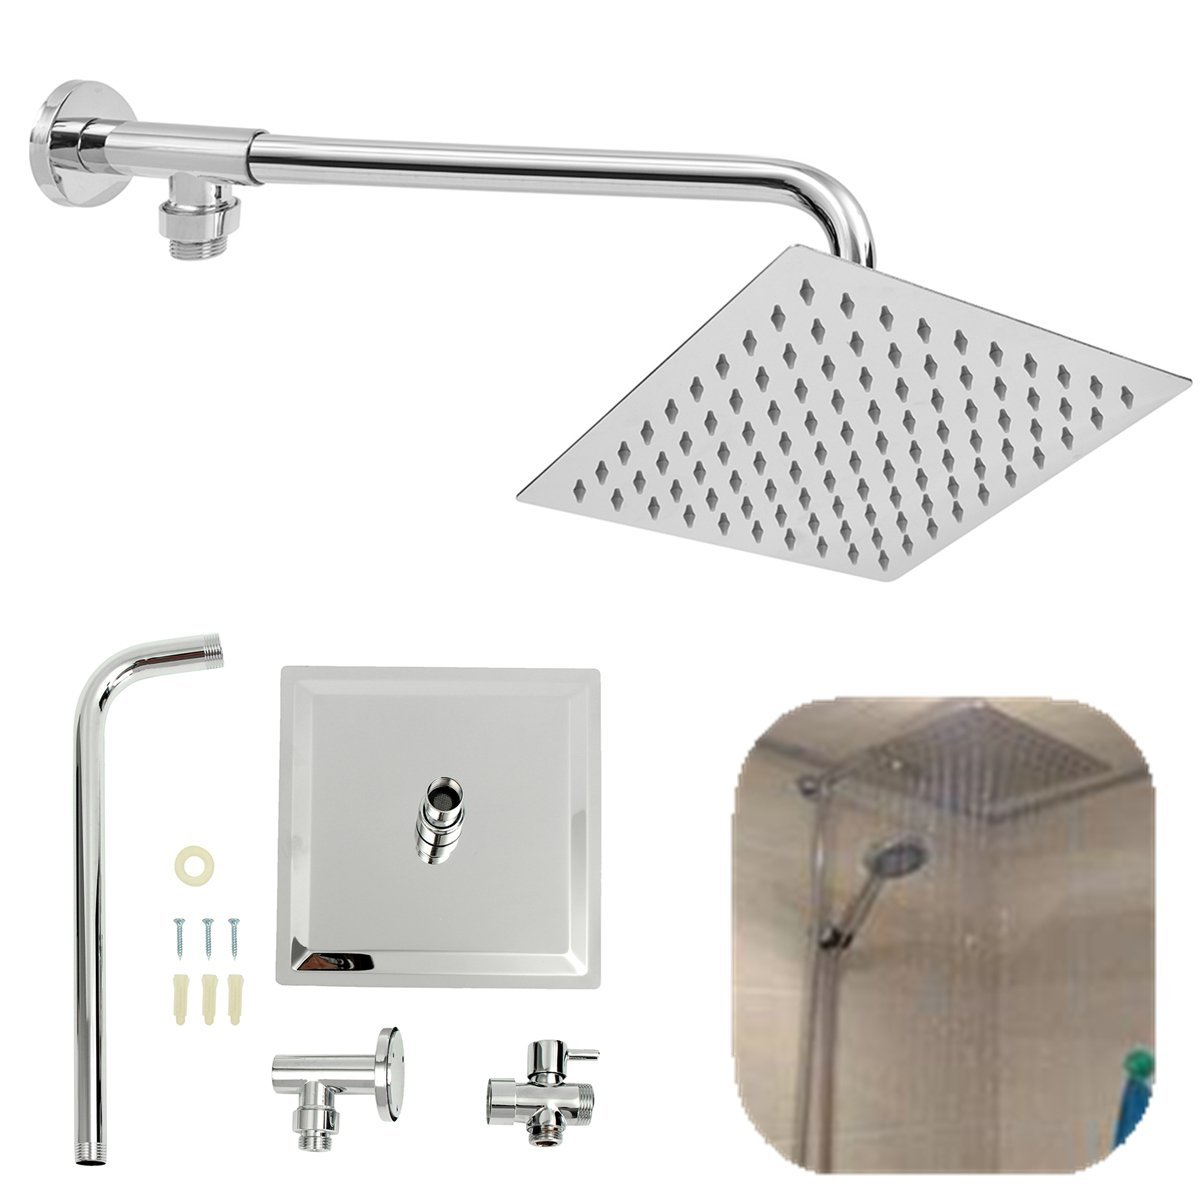 Buy 200mm Shower Head With Arm 8 Inch Stainless Steel Rain